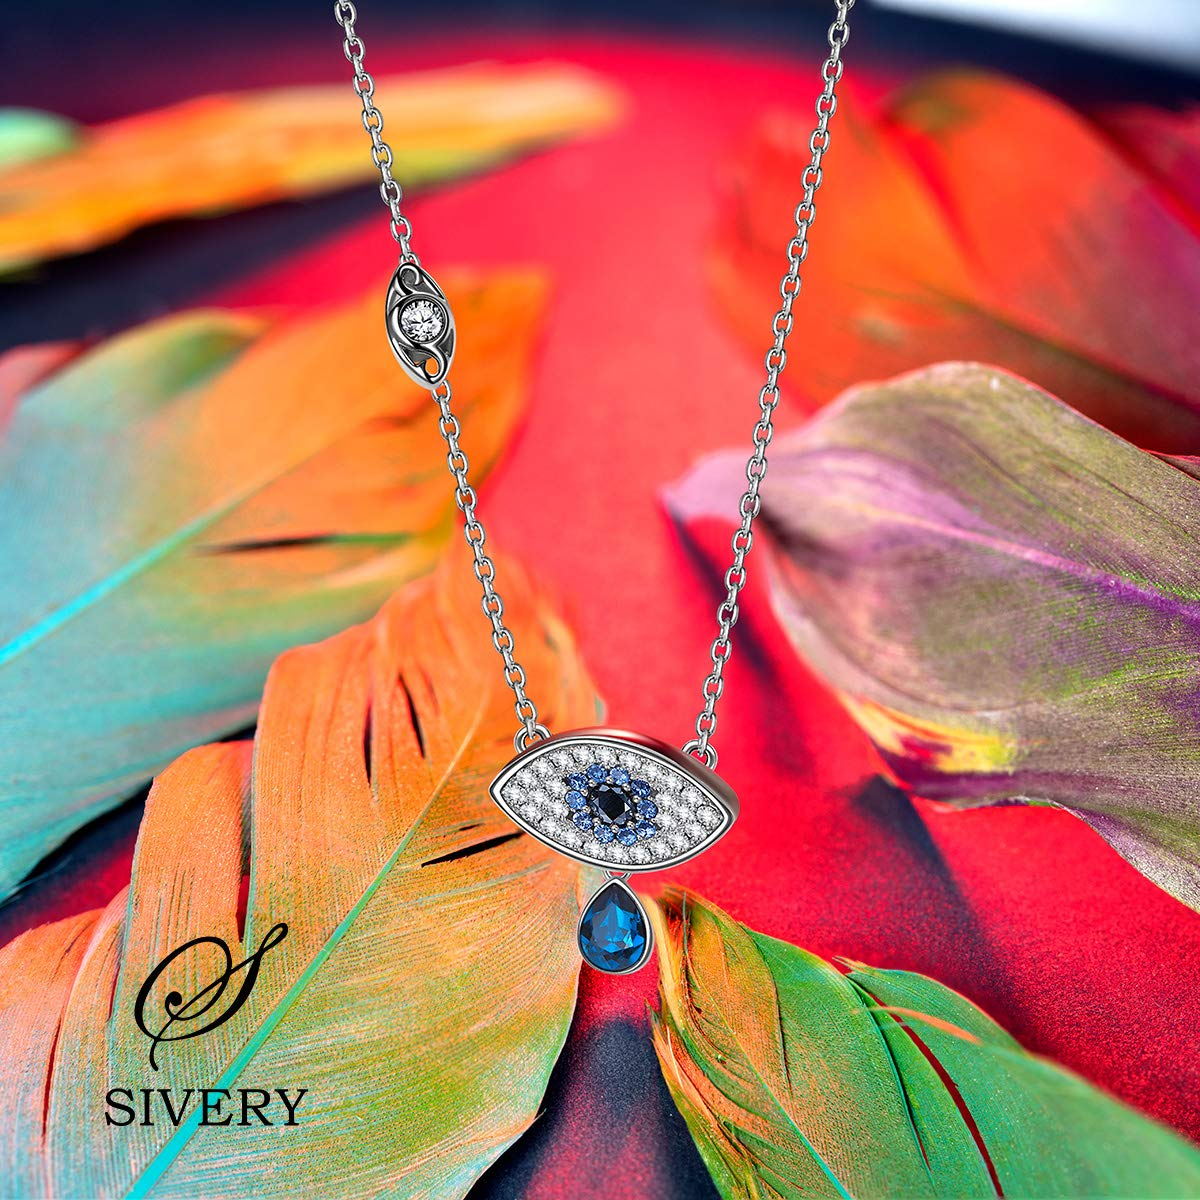 SIVERY Jewelry for Women Evil Eye Bracelet Bangles Made with Swarovski Crystals, Pendant Necklaces for Women, Gifts for Mom, Bracelets for Her